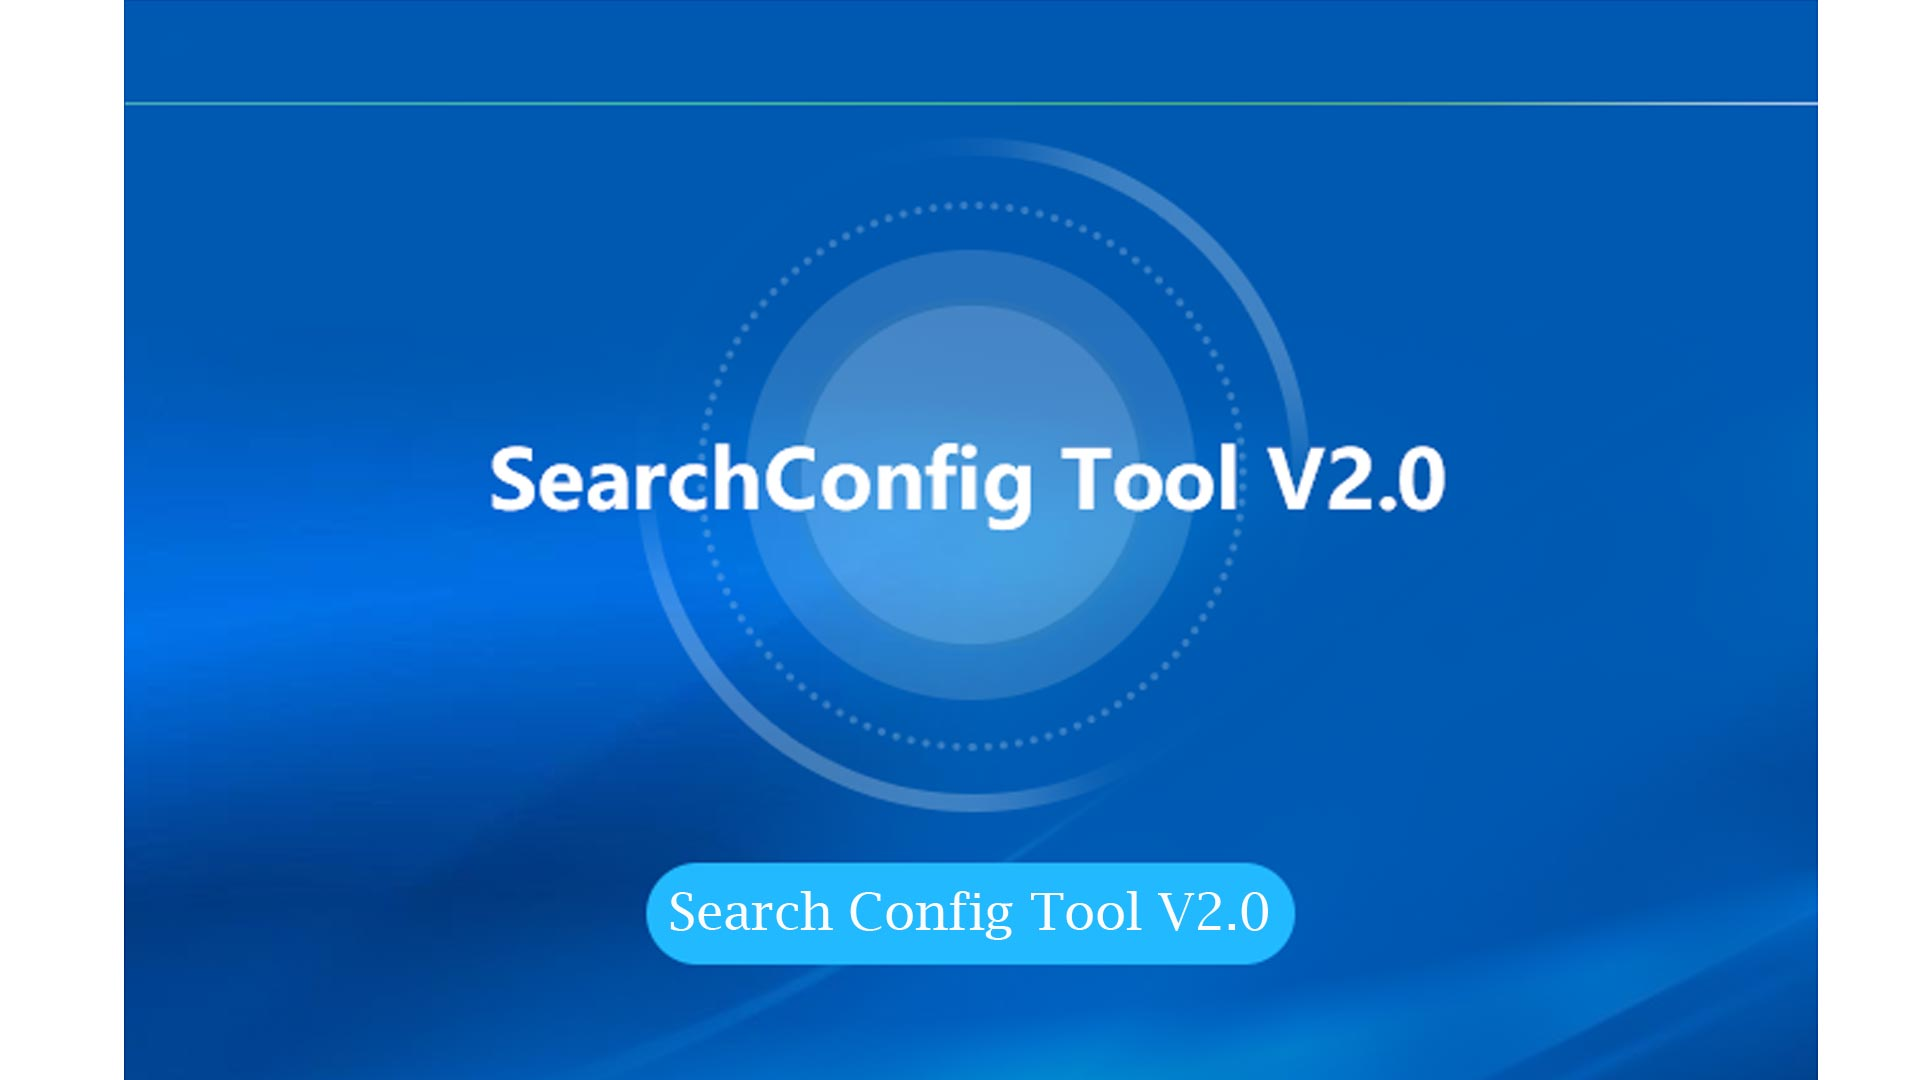 Search Config Tool V2.0